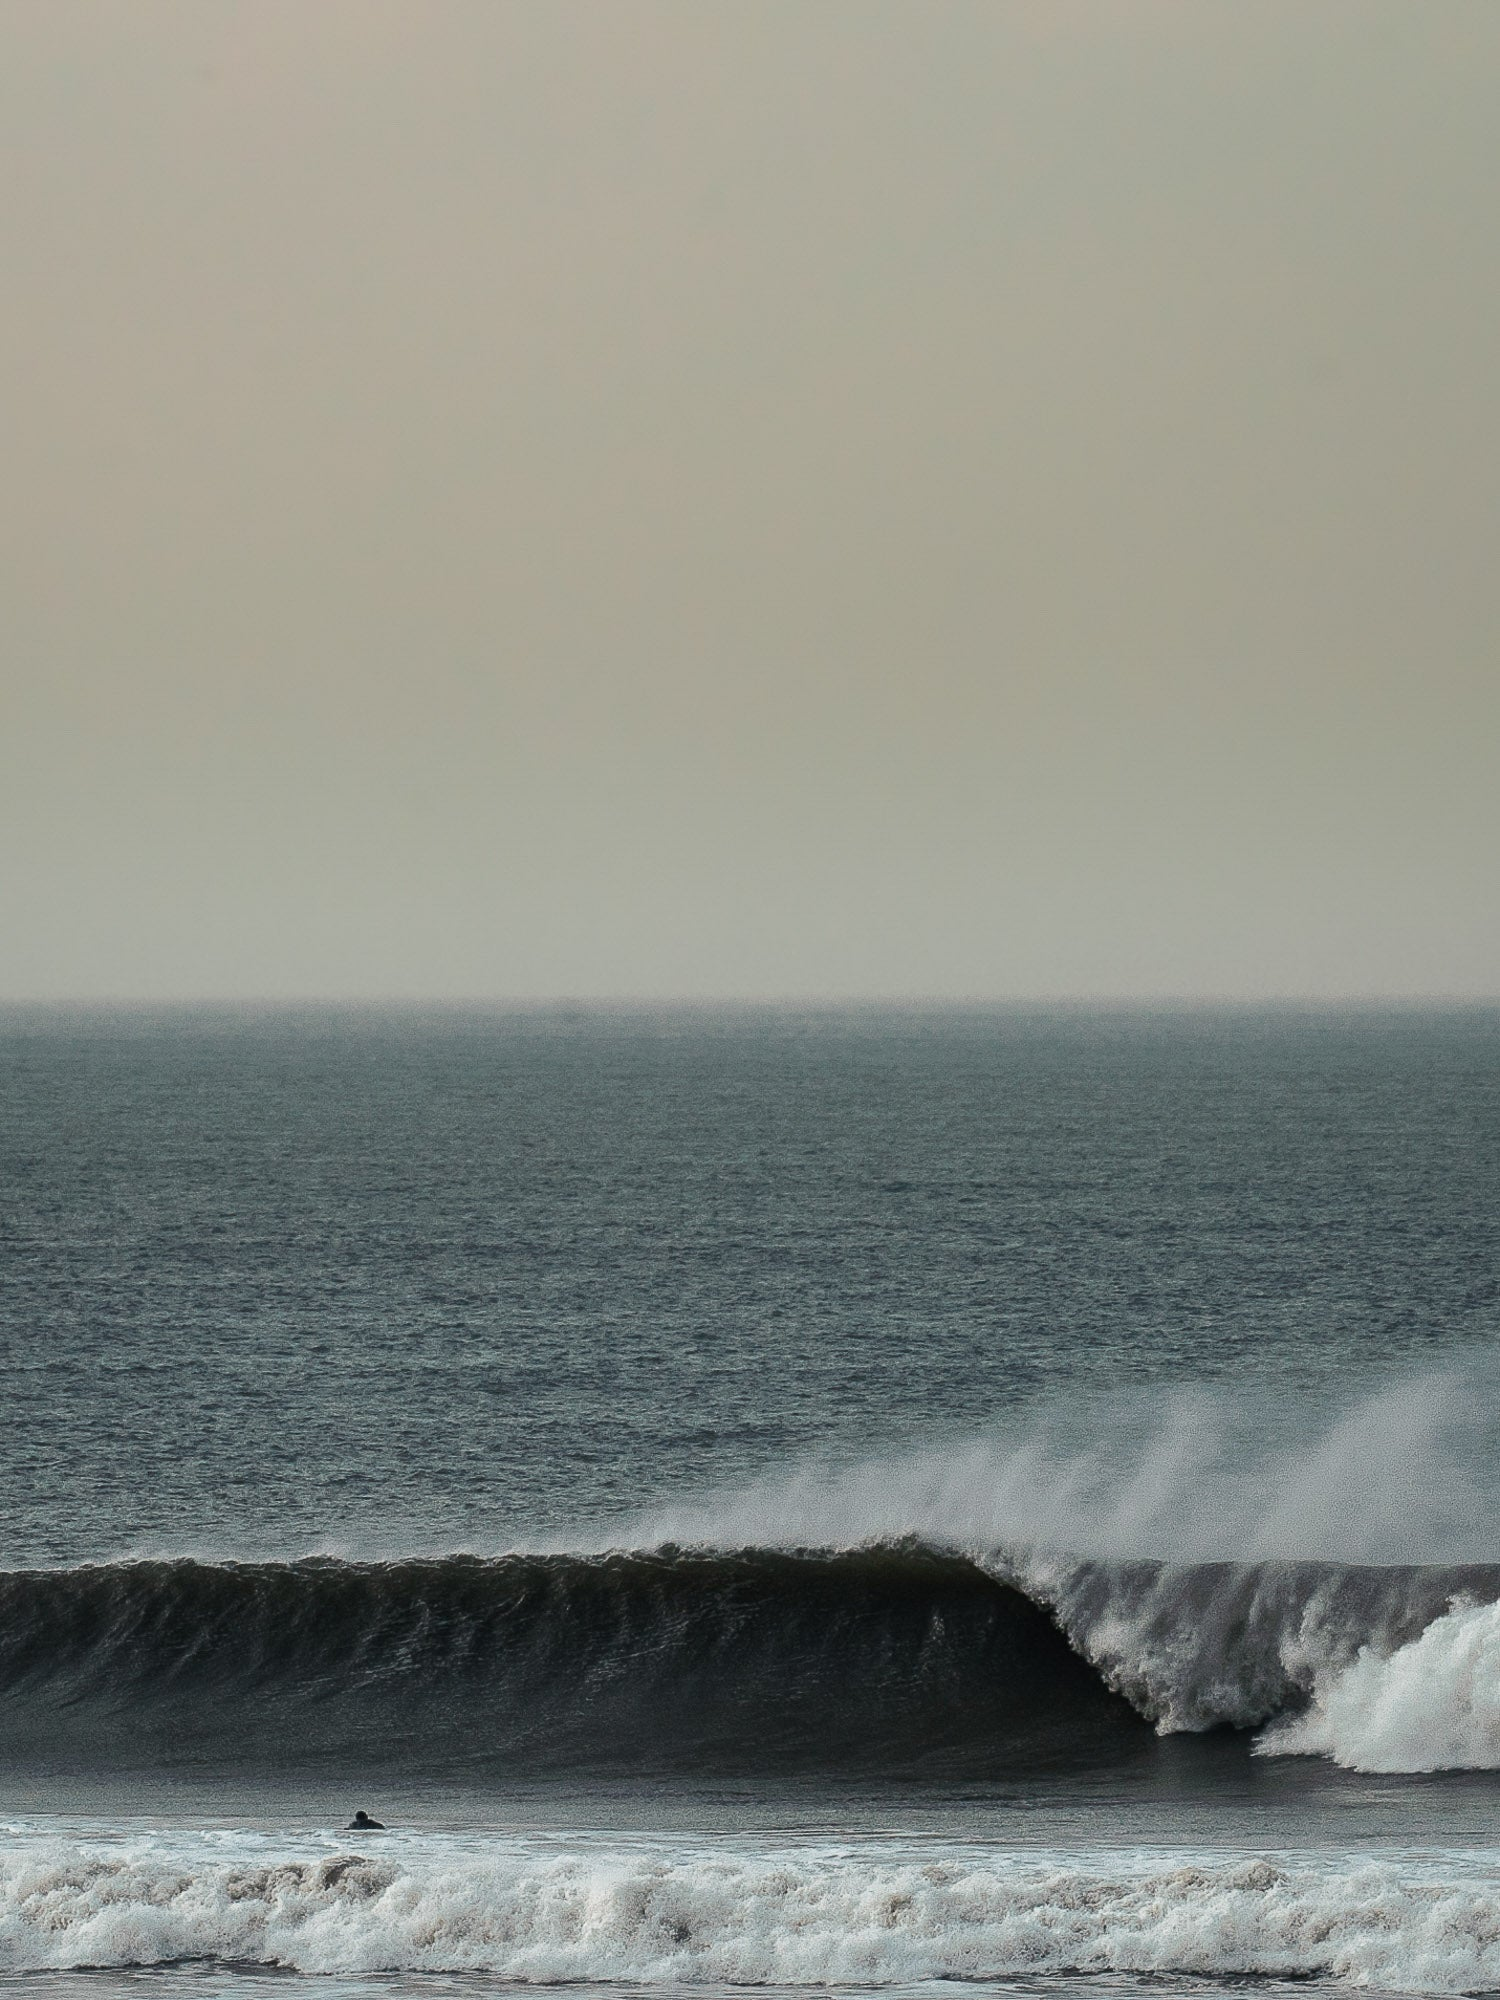 Surfing waves at Woolacombe